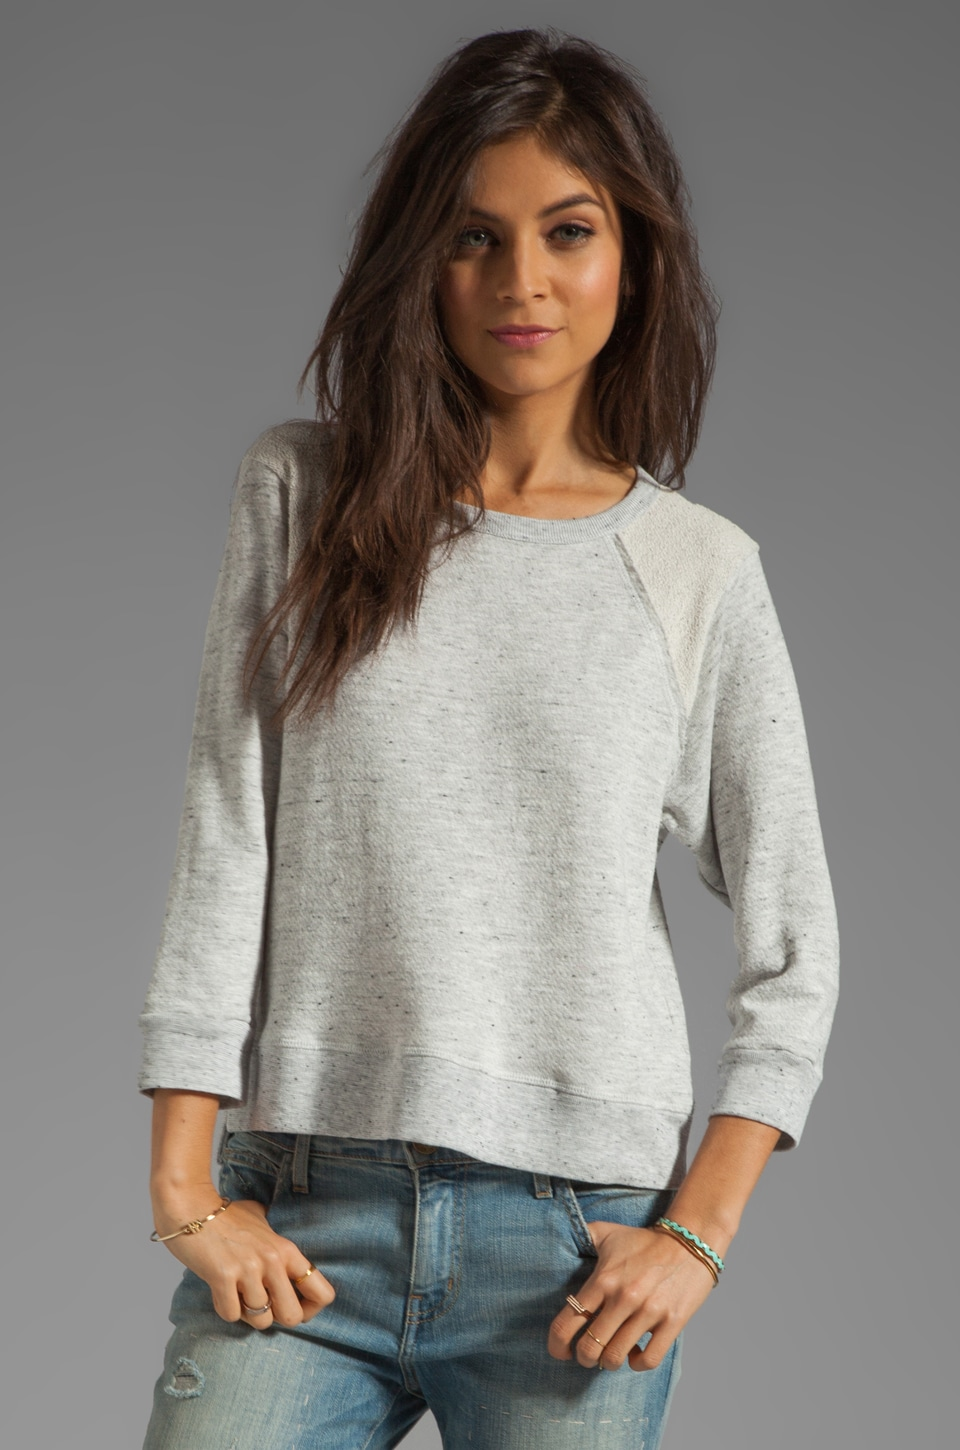 Enza Costa Tri Blend 3/4 Sleeve Raglan in Heather Grey